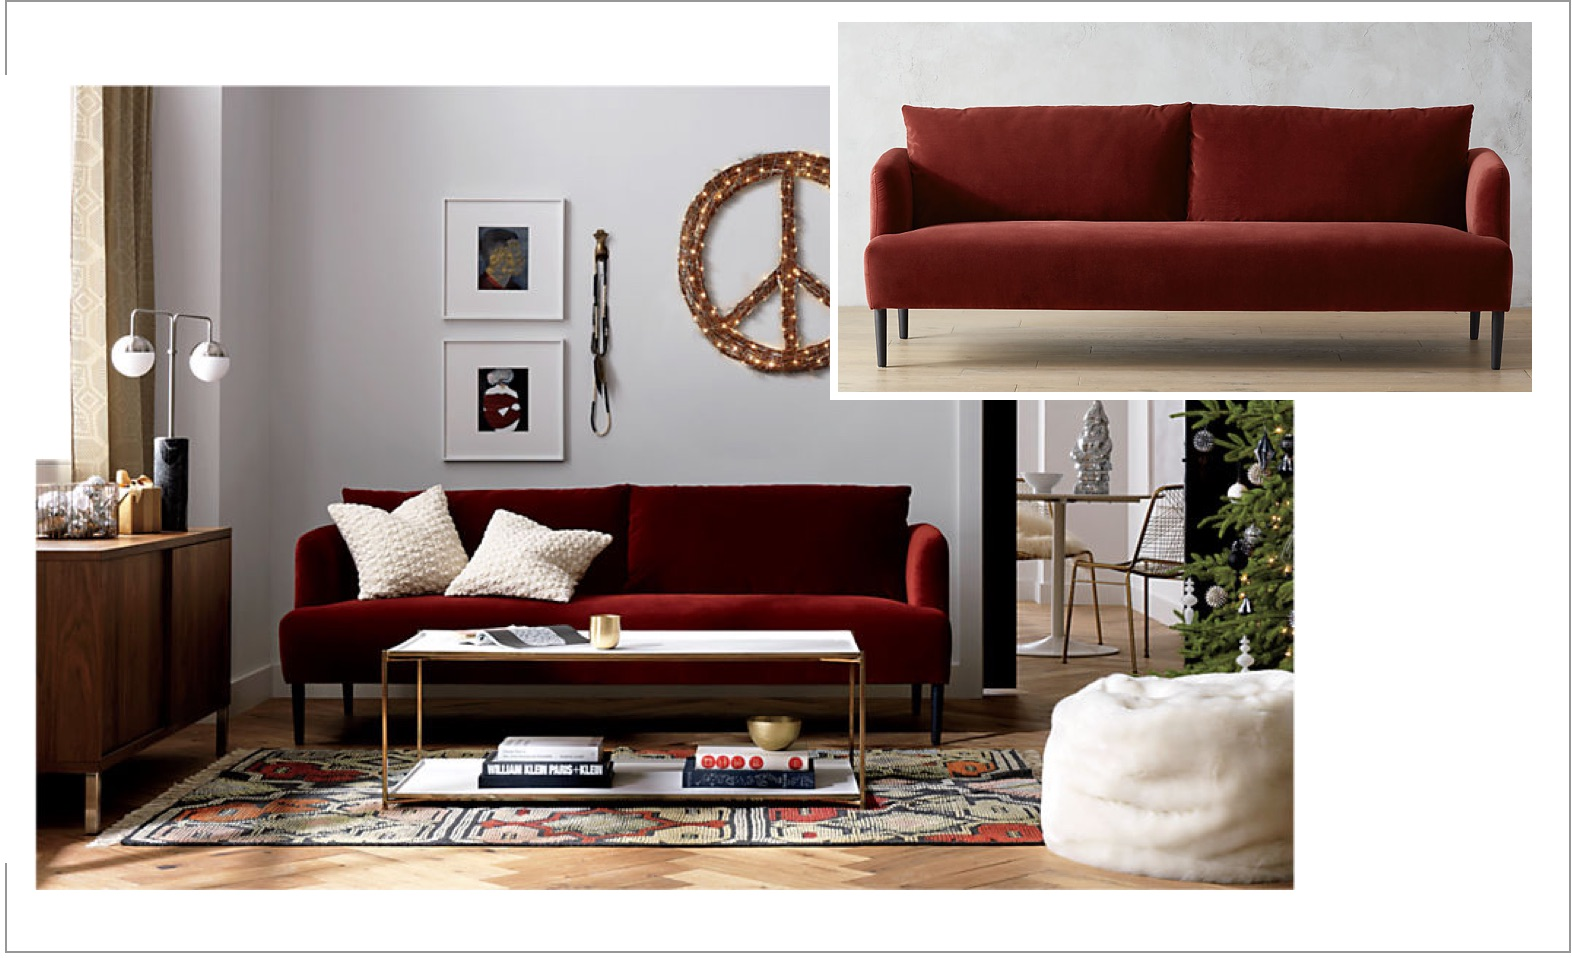 Velvet In Interior Design: Ronan Velvet Wine Sofa With A Interior Design  Template